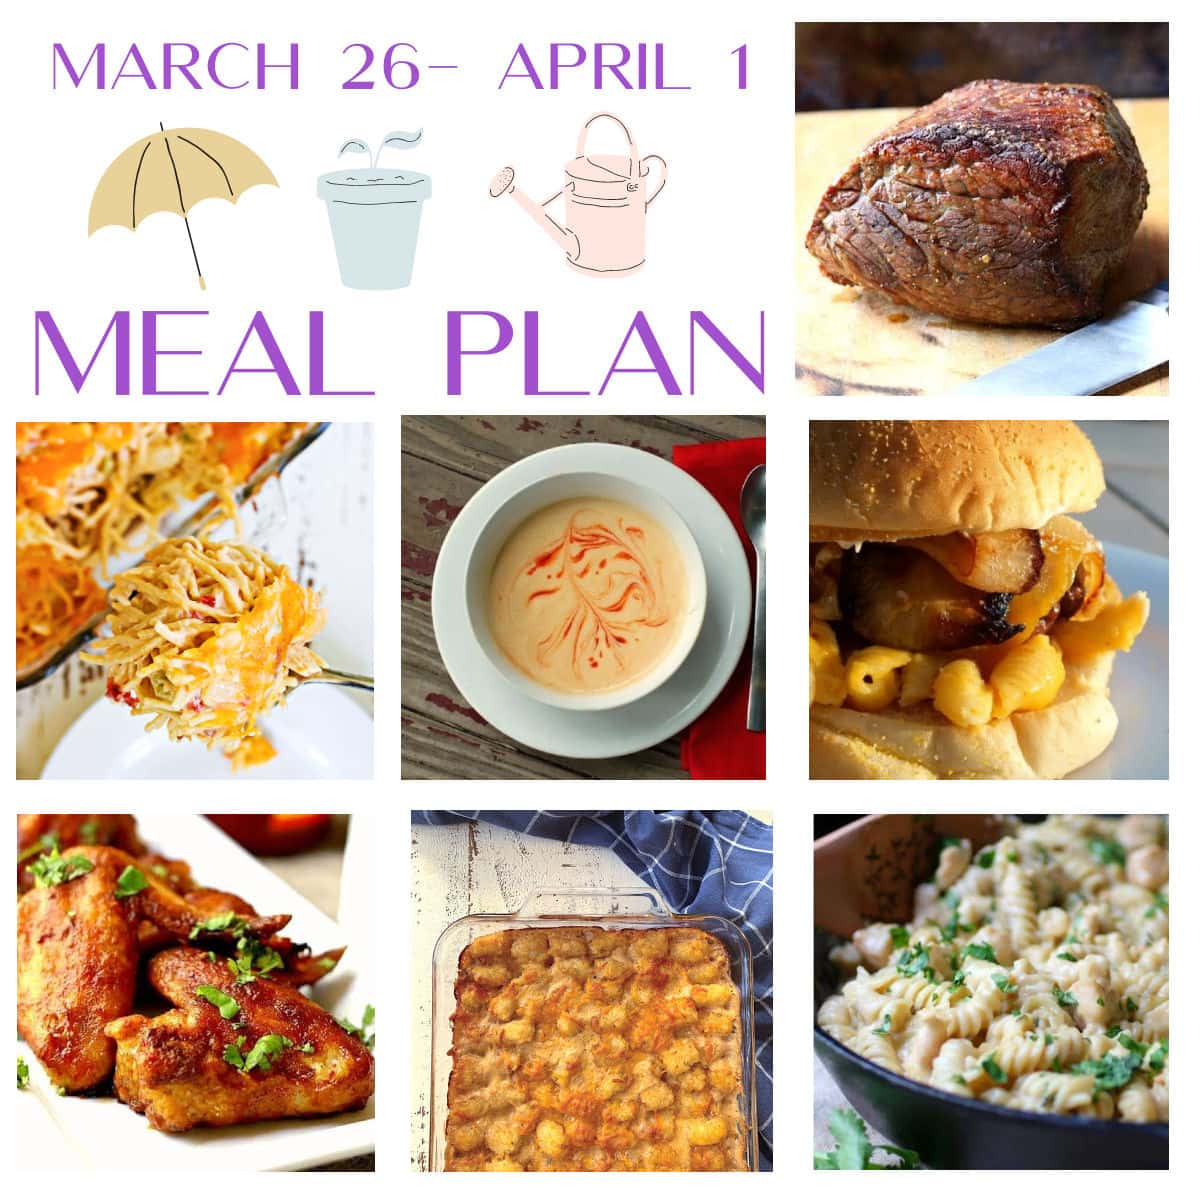 Collage of images from this menu plan with March 26 to April 1 in text.